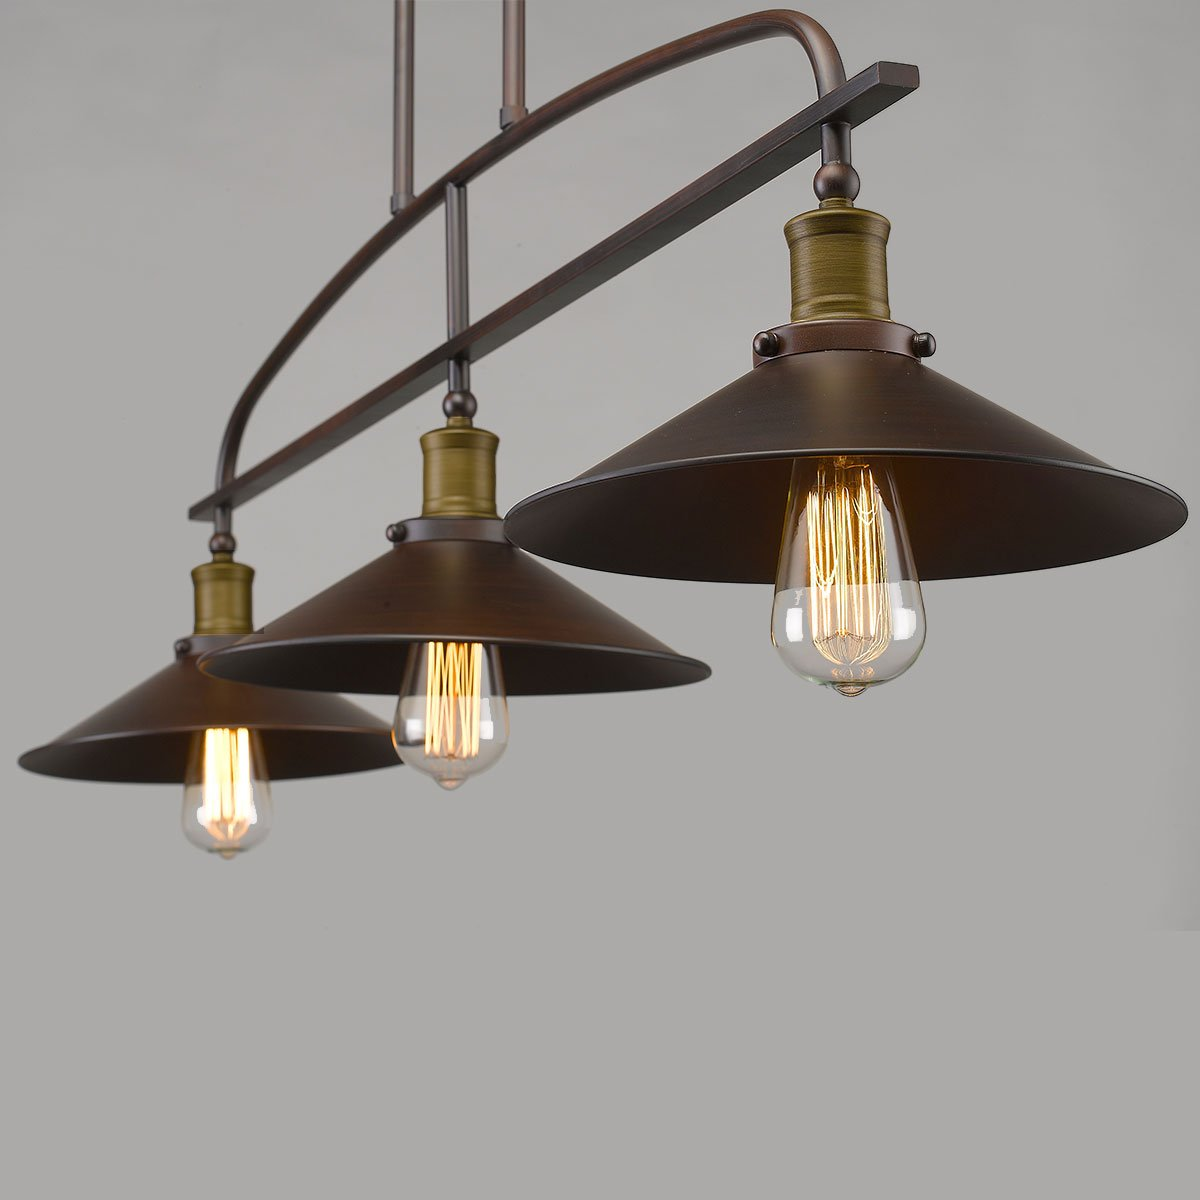 YOBO Lighting Antique Kitchen Island Pendant 3-light Metal Ceiling Chandelier - - Amazon.com & YOBO Lighting Antique Kitchen Island Pendant 3-light Metal ... azcodes.com